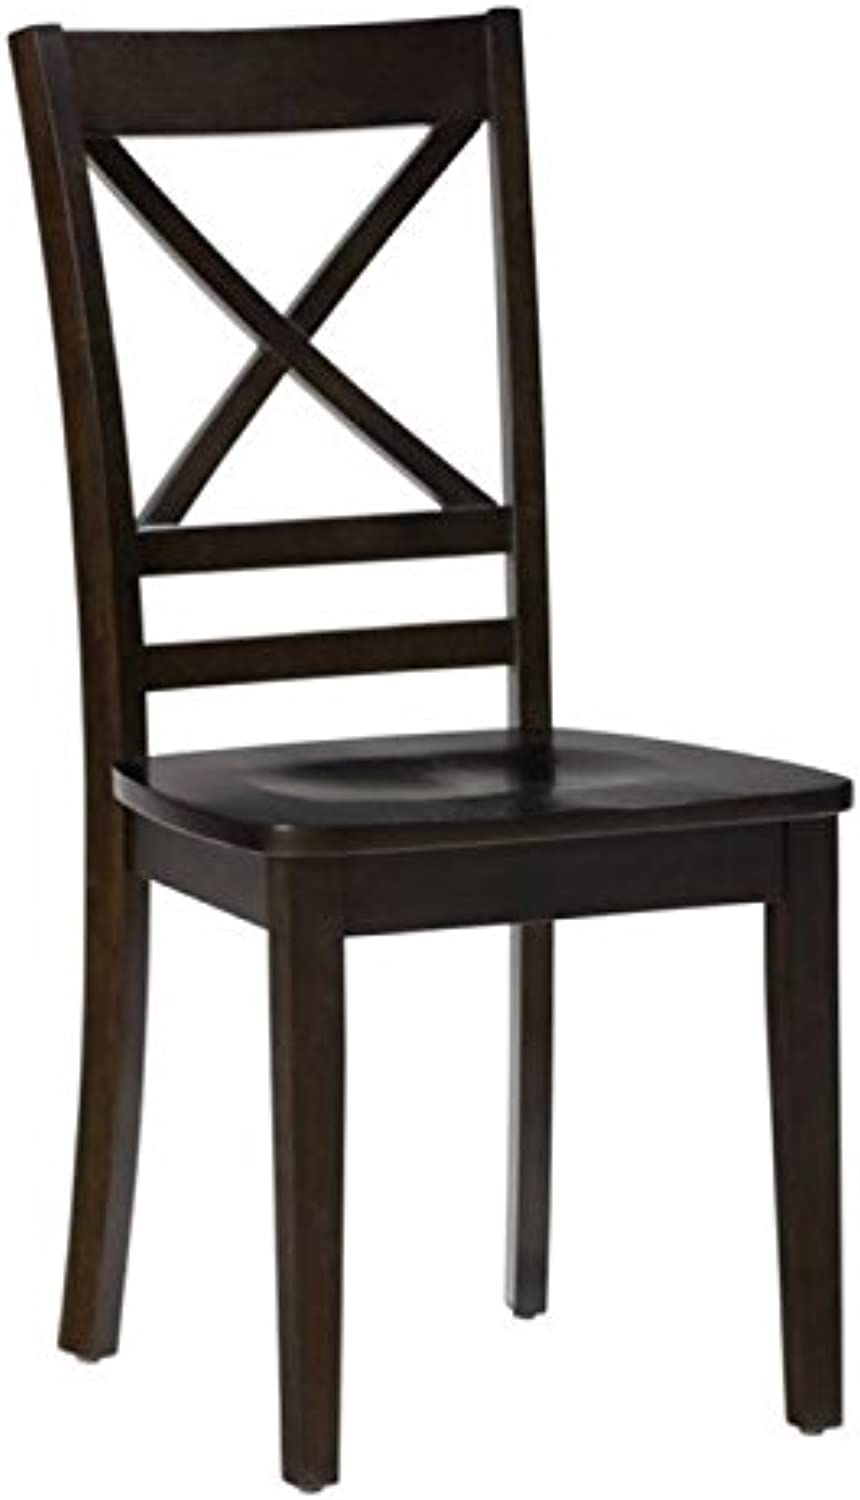 Bowery Hill Wood X Back Dining Chair in Espresso (Set of 2)